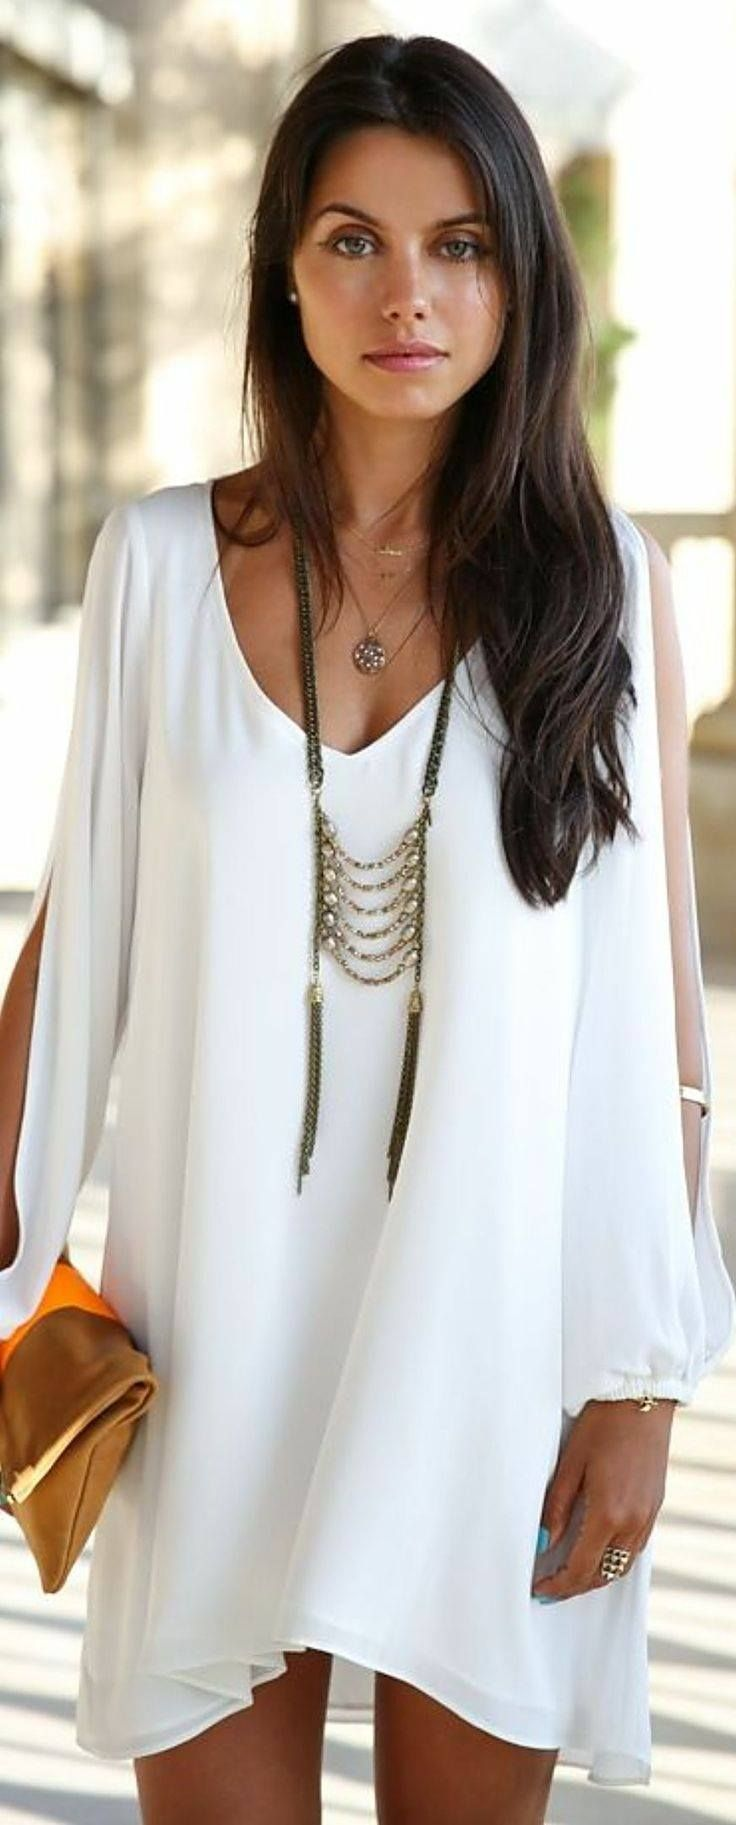 27703 Best Images About Sex And The City 2 On Pinterest Chic Street Styles Milan Fashion